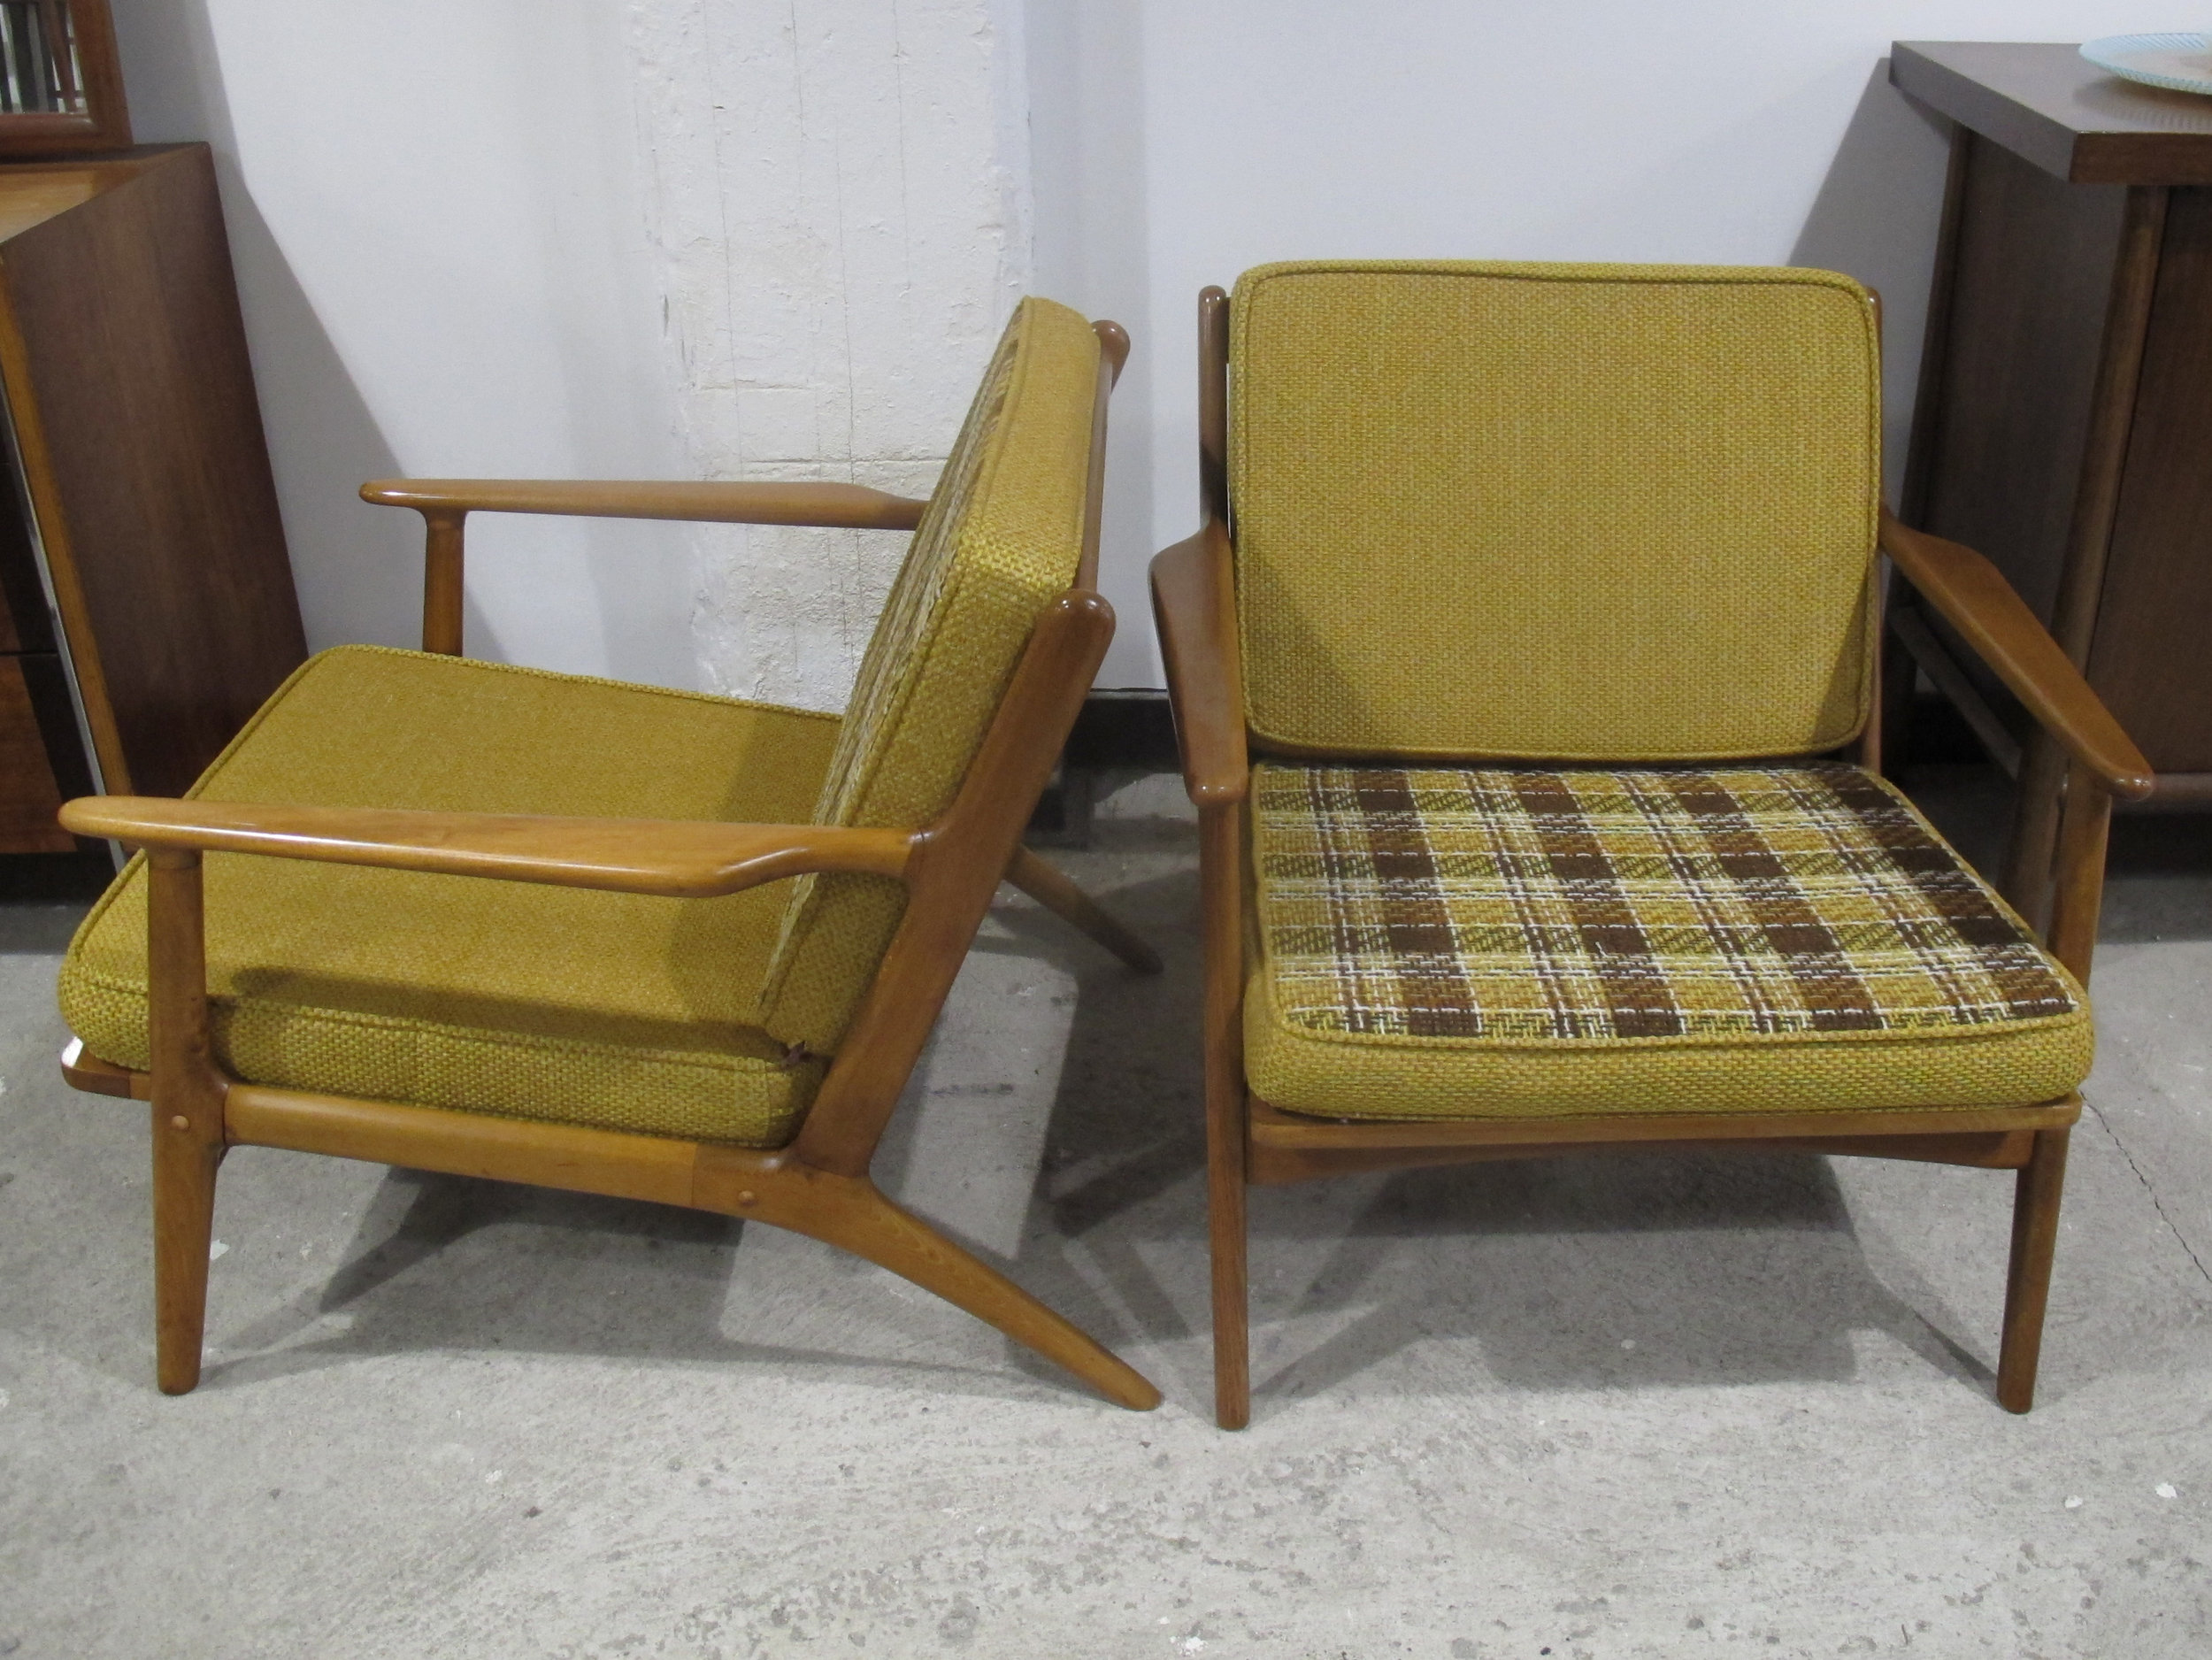 PAIR ADRIAN PEARSALL STYLE DANISH MODERN SPINDLE BACK LOUNGE CHAIRS